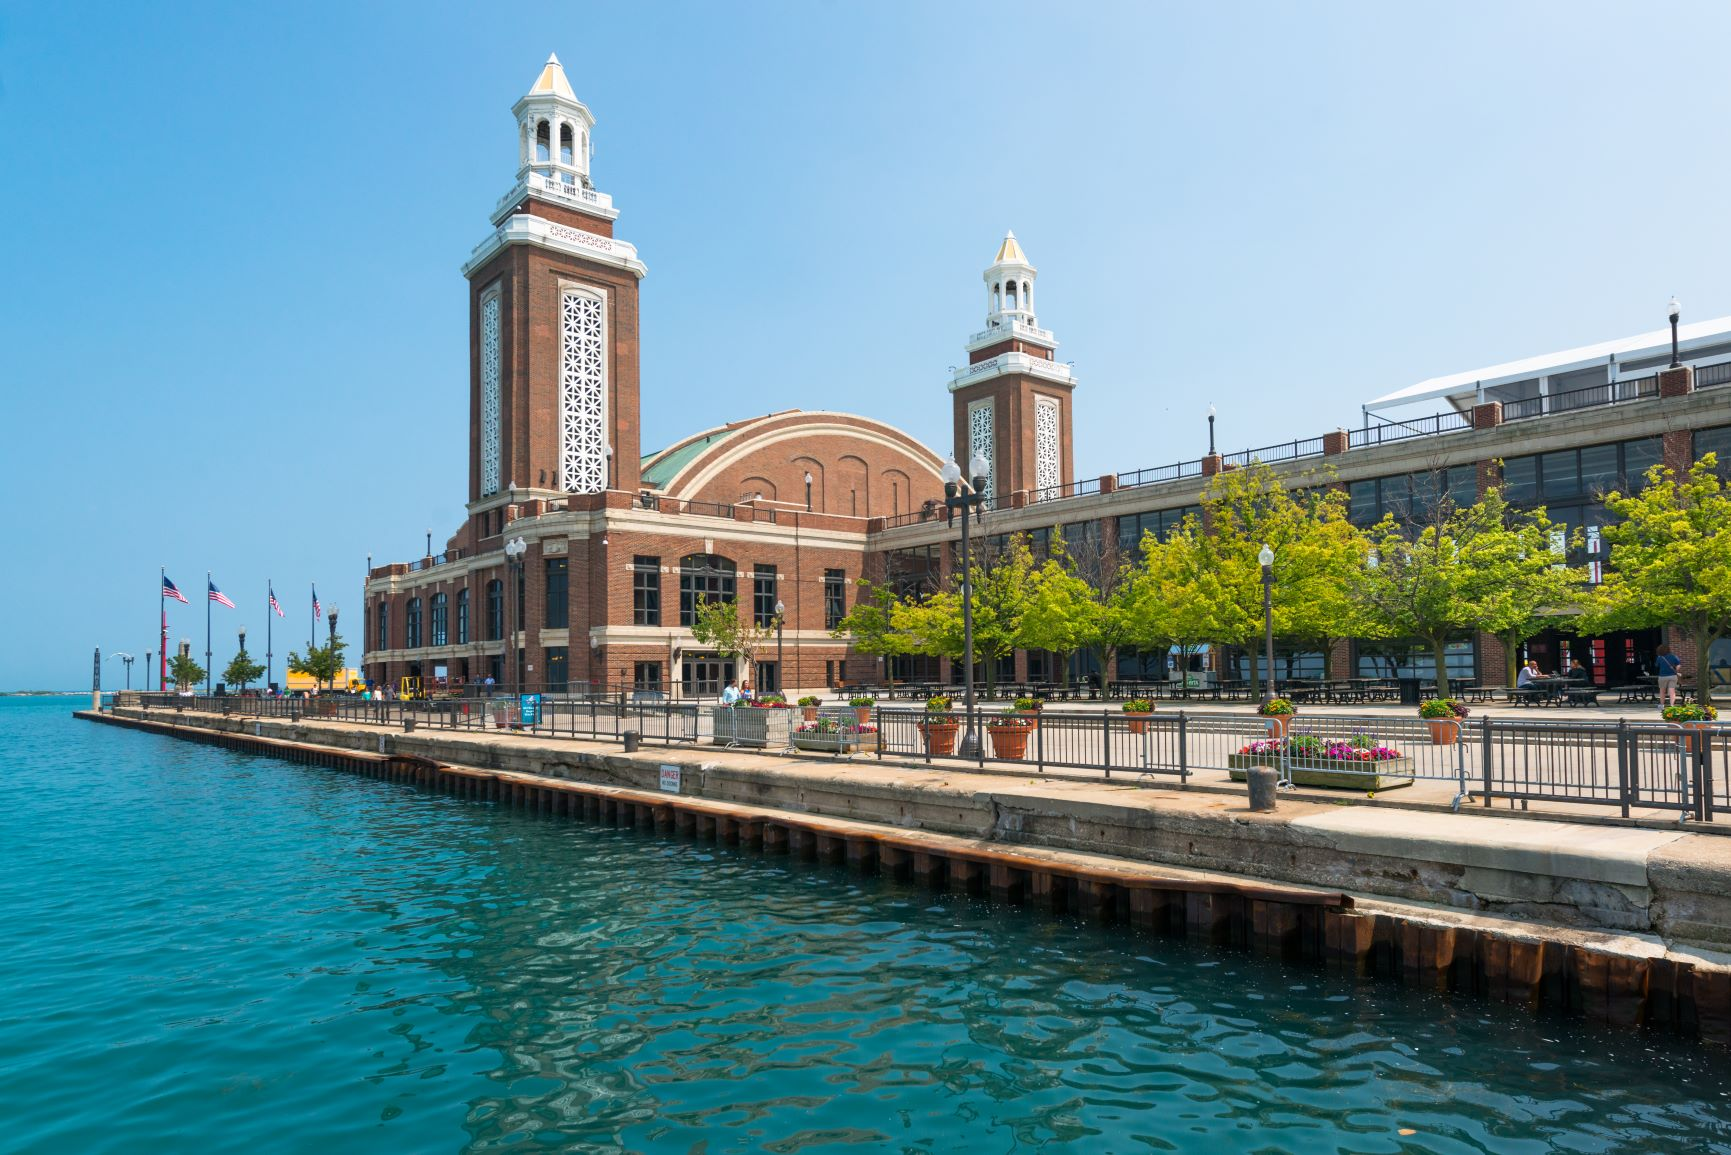 Fishermen's Guide to Navy Pier